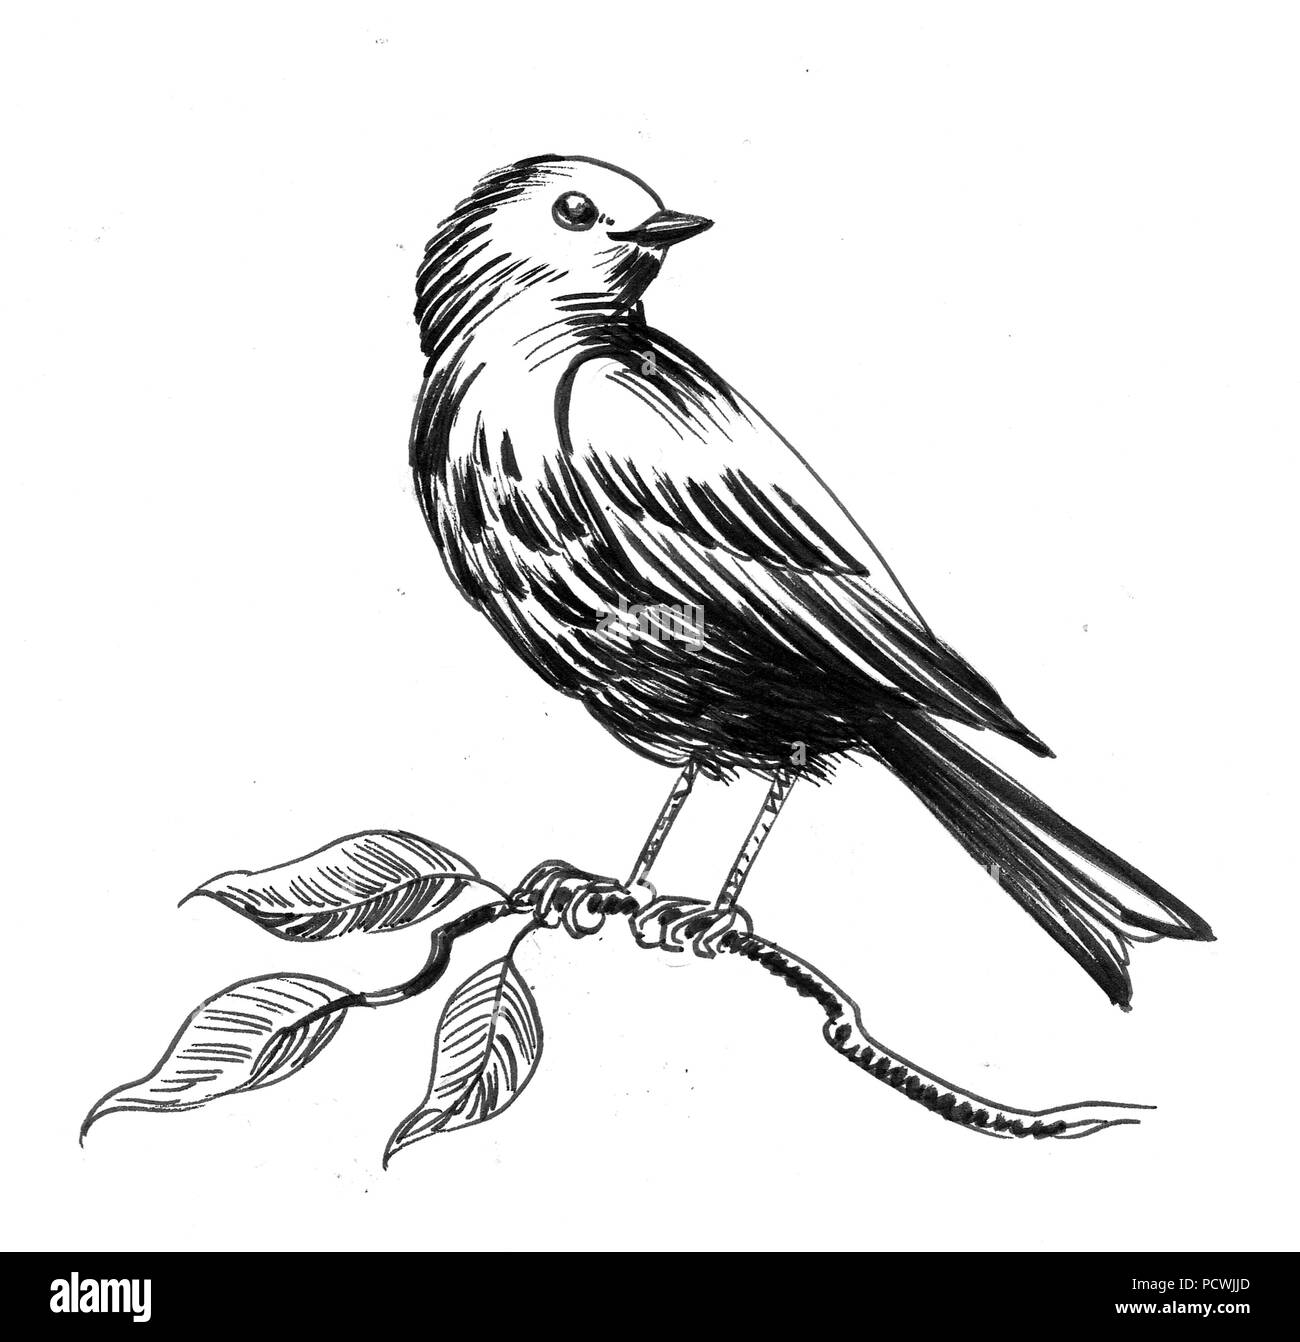 Bird Sitting On A Tree Branch Ink Black And White Illustration Stock Photo Alamy